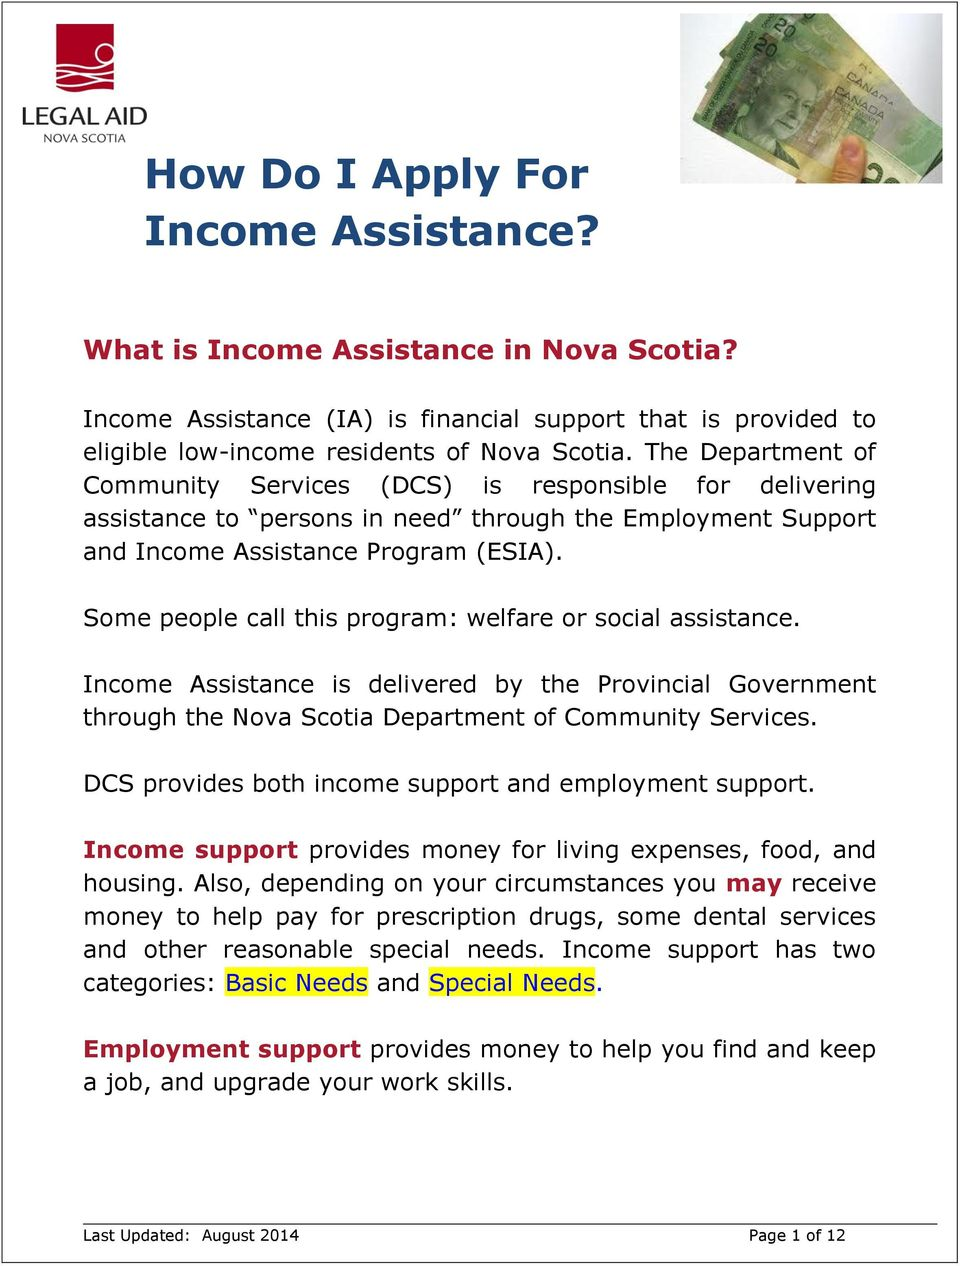 Some people call this program: welfare or social assistance. Income Assistance is delivered by the Provincial Government through the Nova Scotia Department of Community Services.